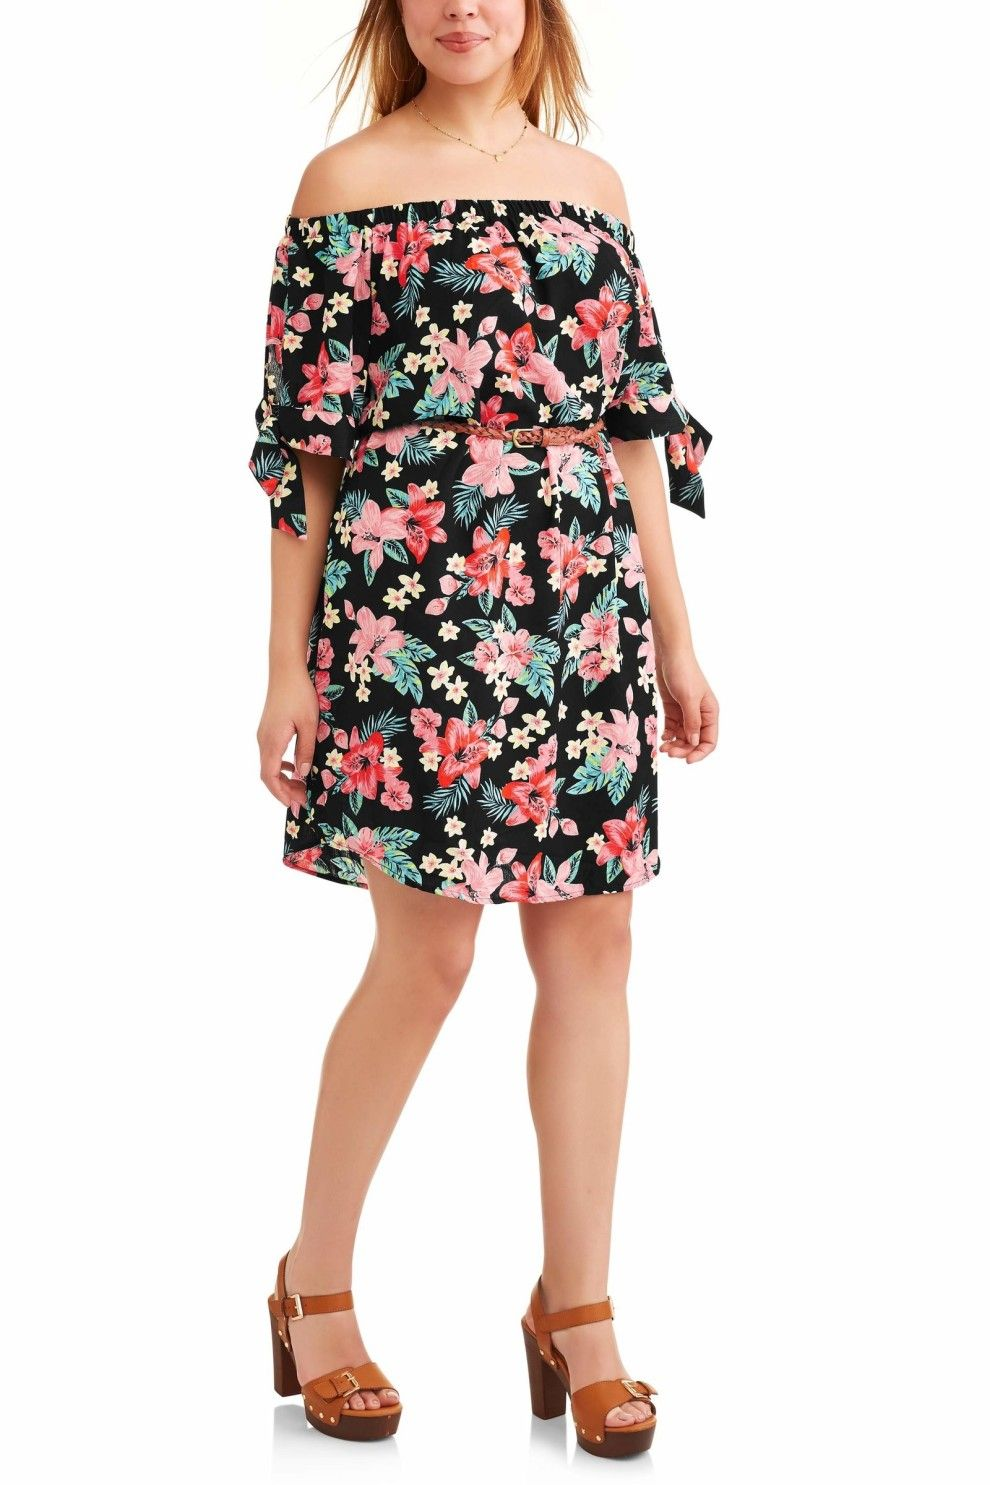 88412a8af1 28 Dresses No One Will Ever Believe You Got From Walmart